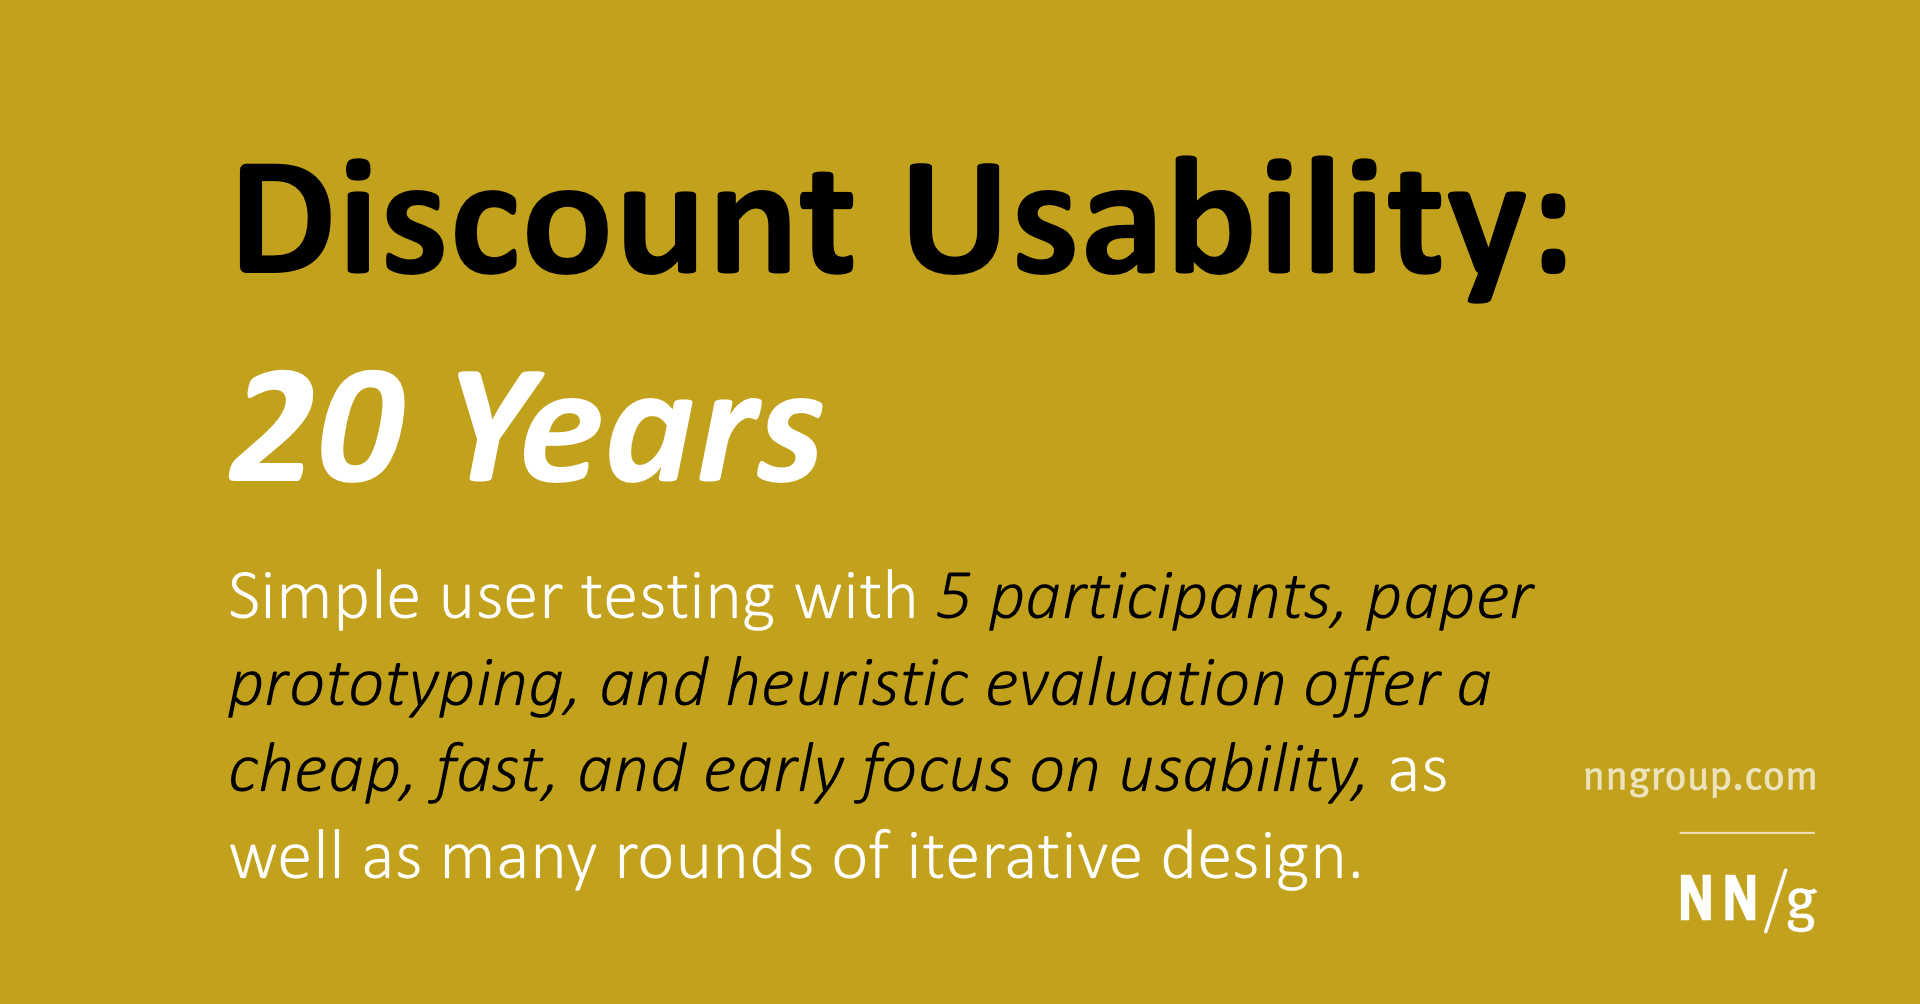 Discount Usability: 20 Years